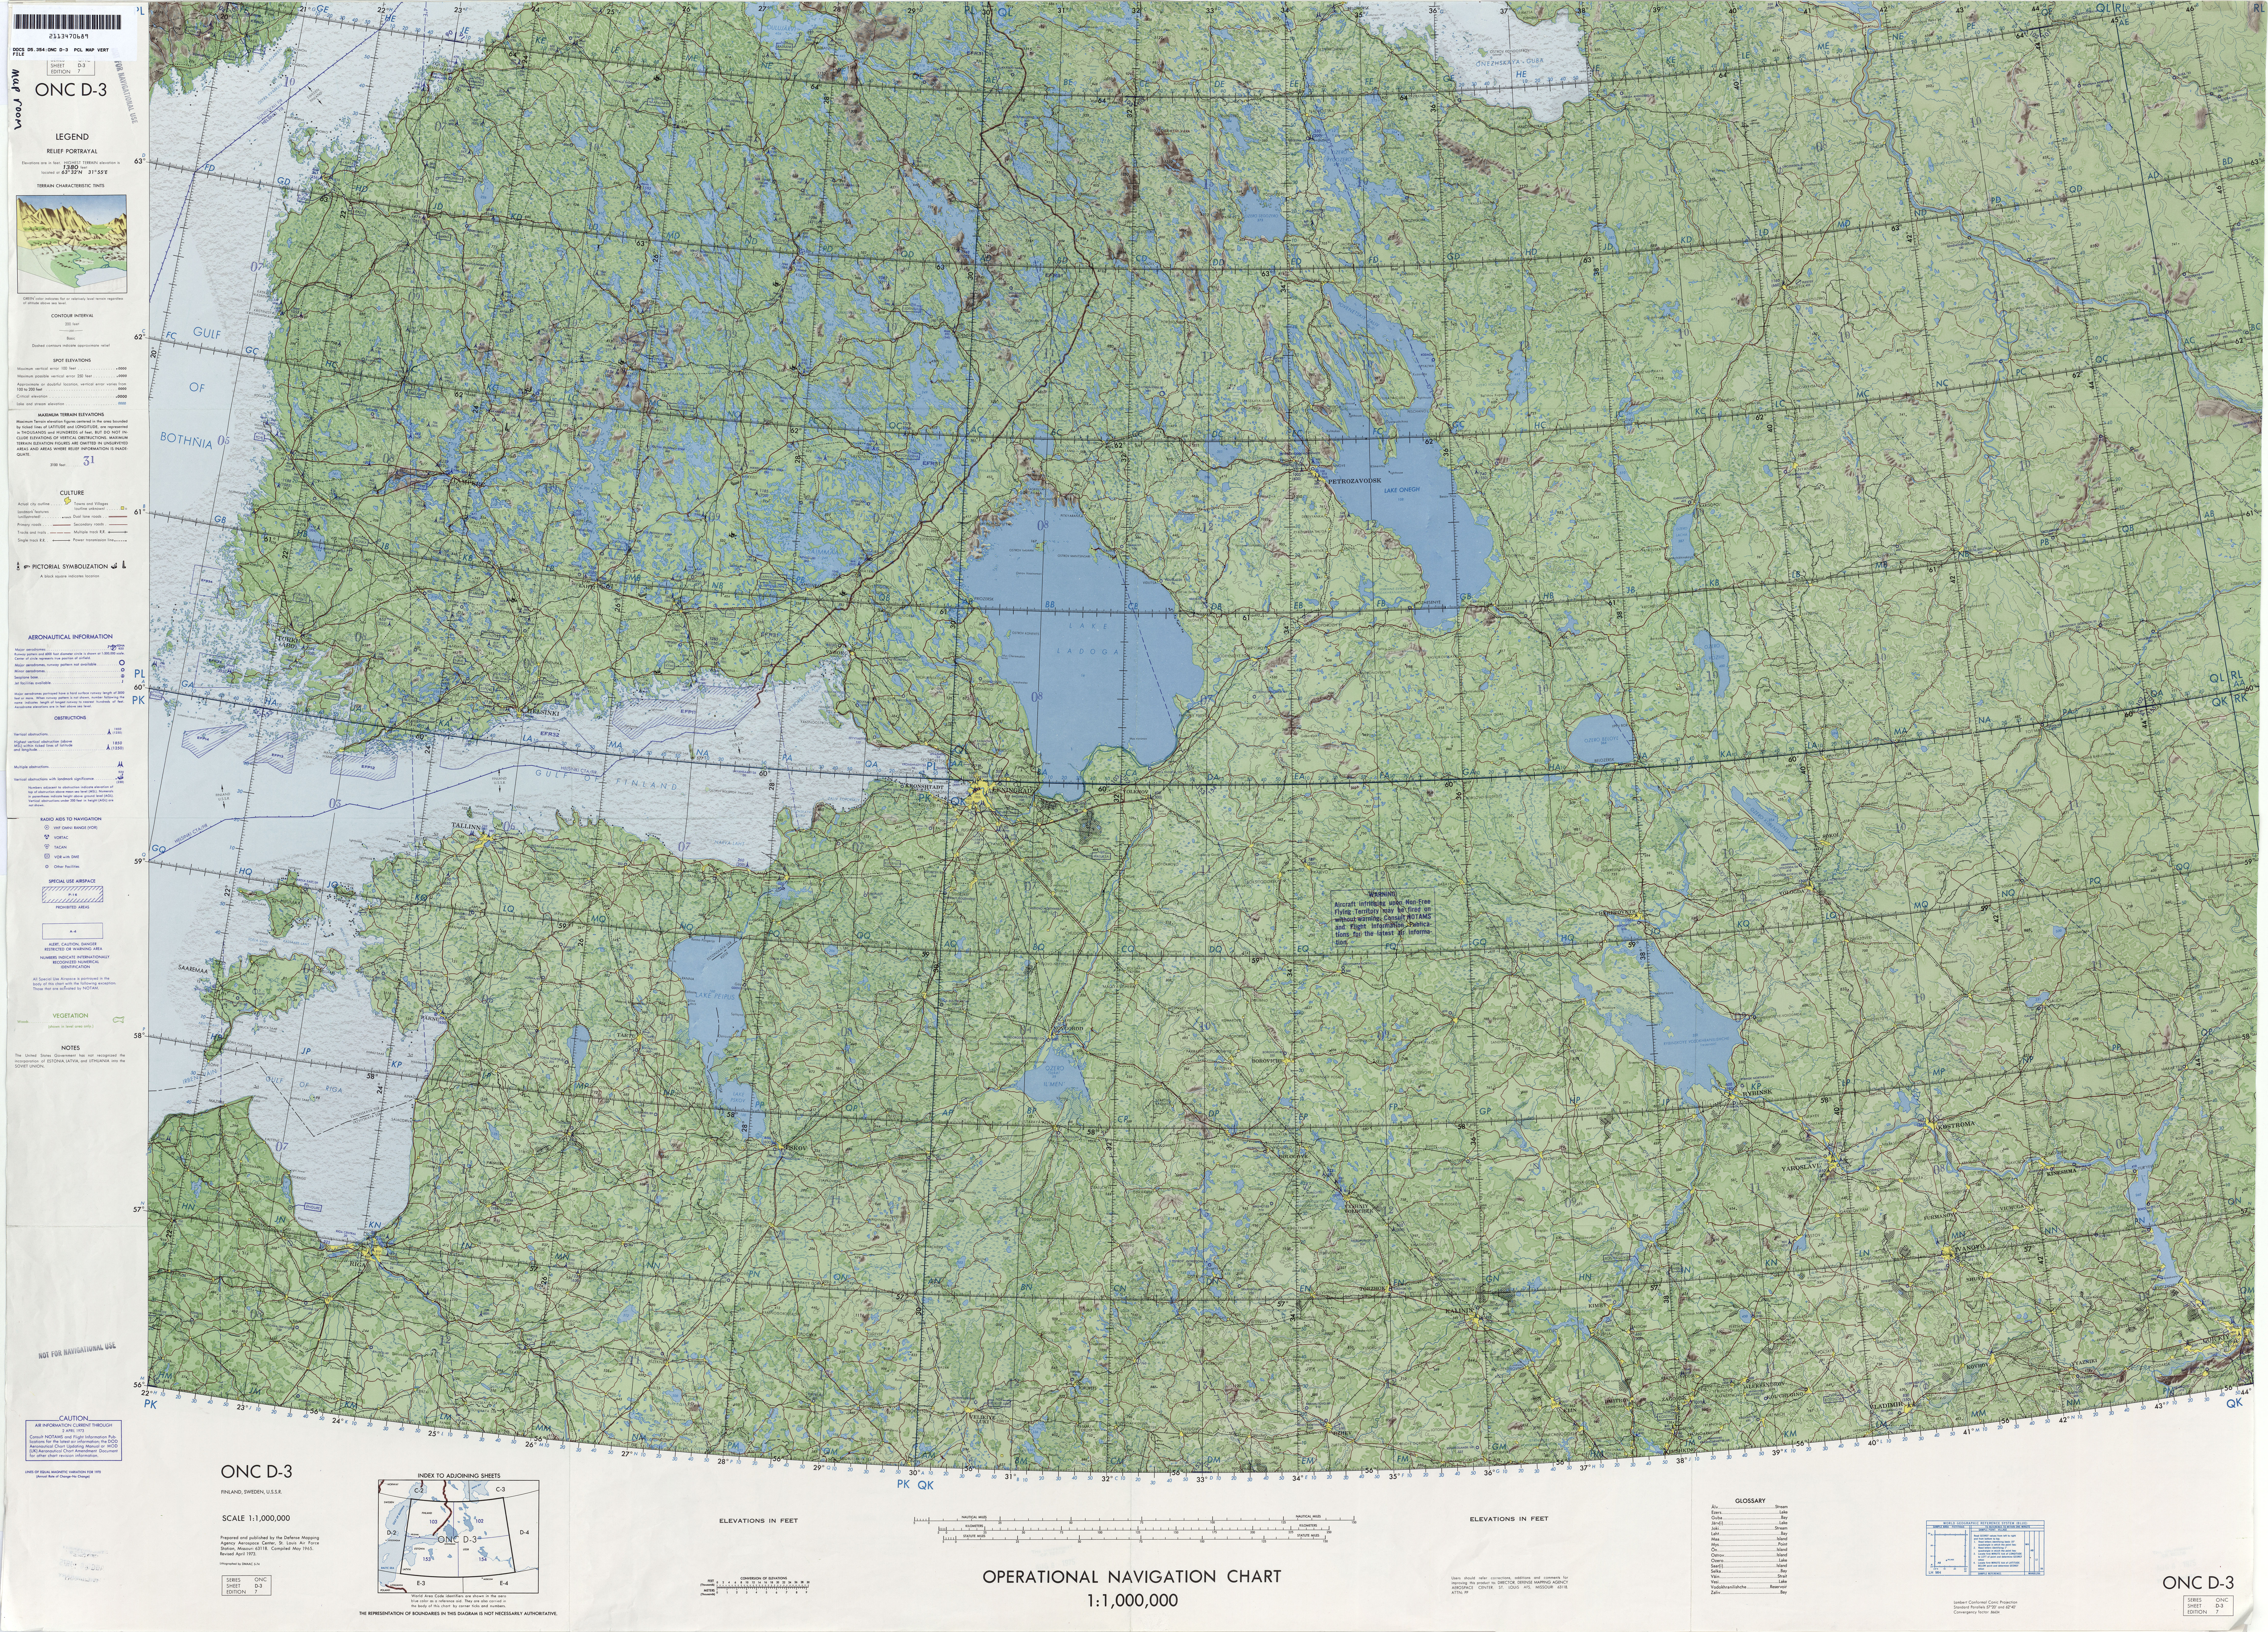 Operational Navigation Charts Perry Castaneda Map Collection Ut - Us-map-chart